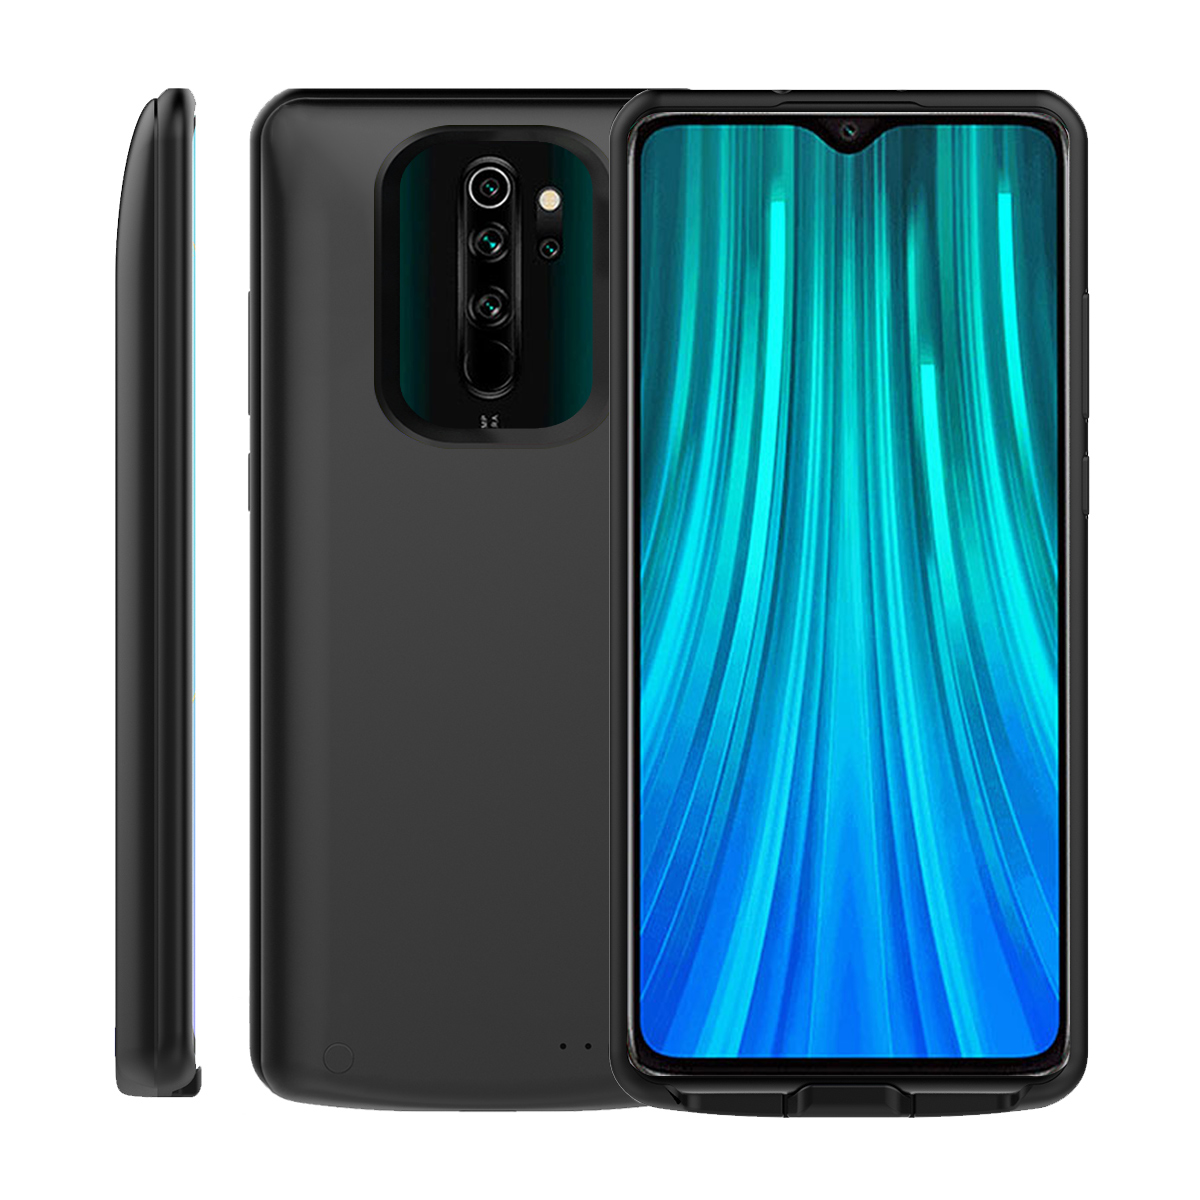 For Xiaomi Redmi Note 8 Pro Battery Charger Case 6500mAh Extended Backup Charging Power Bank Cover Redmi Note 8 Pro Case Battery